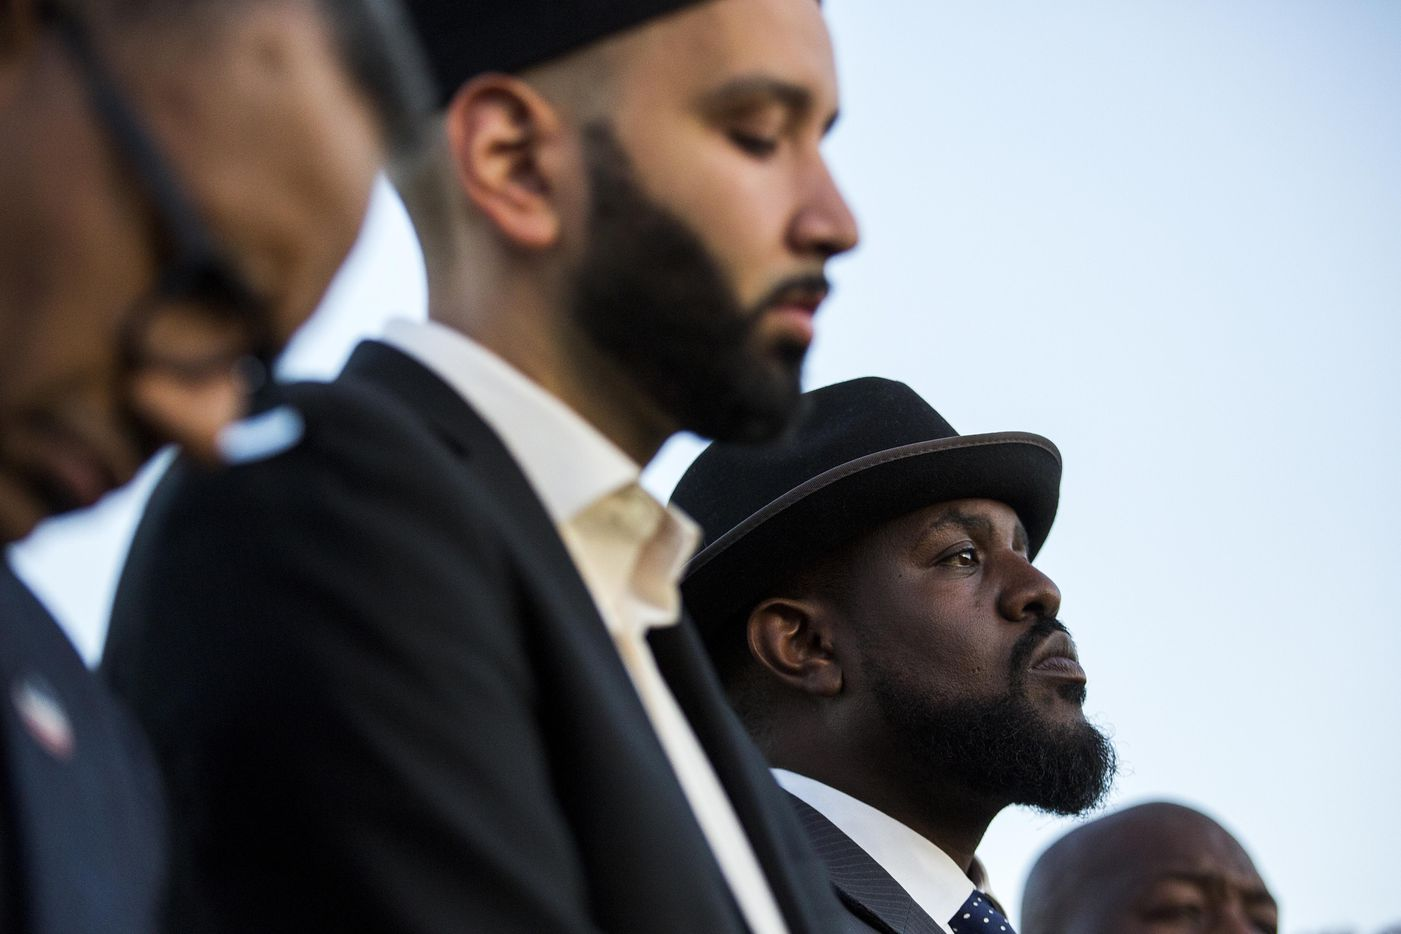 """Dr. Michael W. Waters (right) and Imam Omar Suleiman (center) listen to a speaker during the """"Remember His Name: Vigil for Jordan Edwards"""" candlelight vigil at Virgil T. Irwin Park on Thursday, May 4, 2017, in Balch Springs, Texas."""